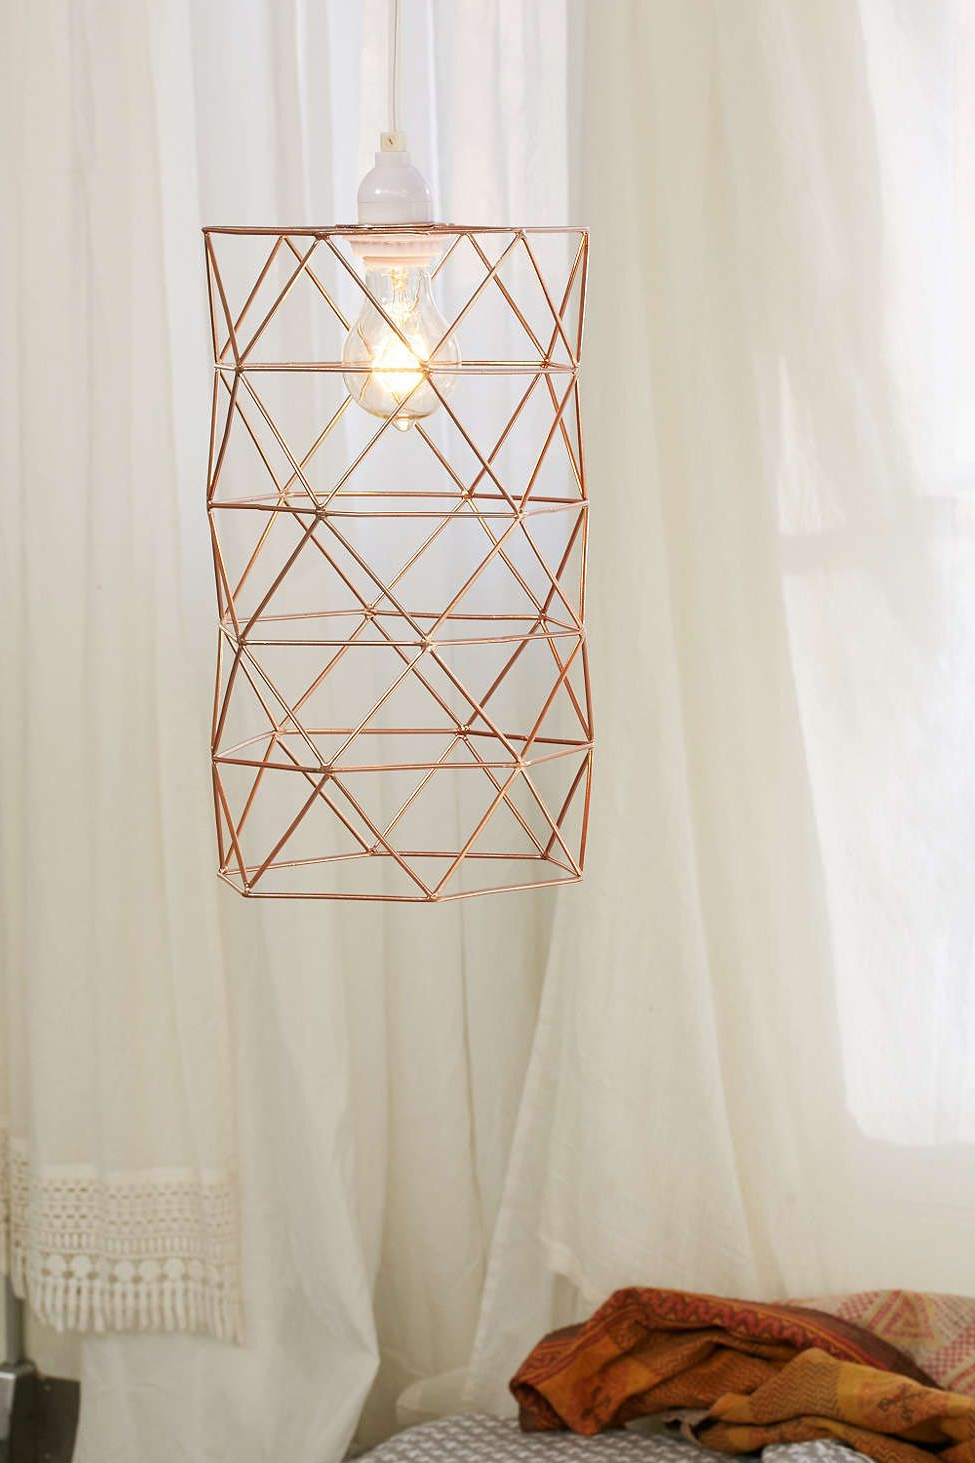 Wire Pendant, Cage Pendant Light Within Akash Industrial Vintage 1 Light Geometric Pendants (View 21 of 25)